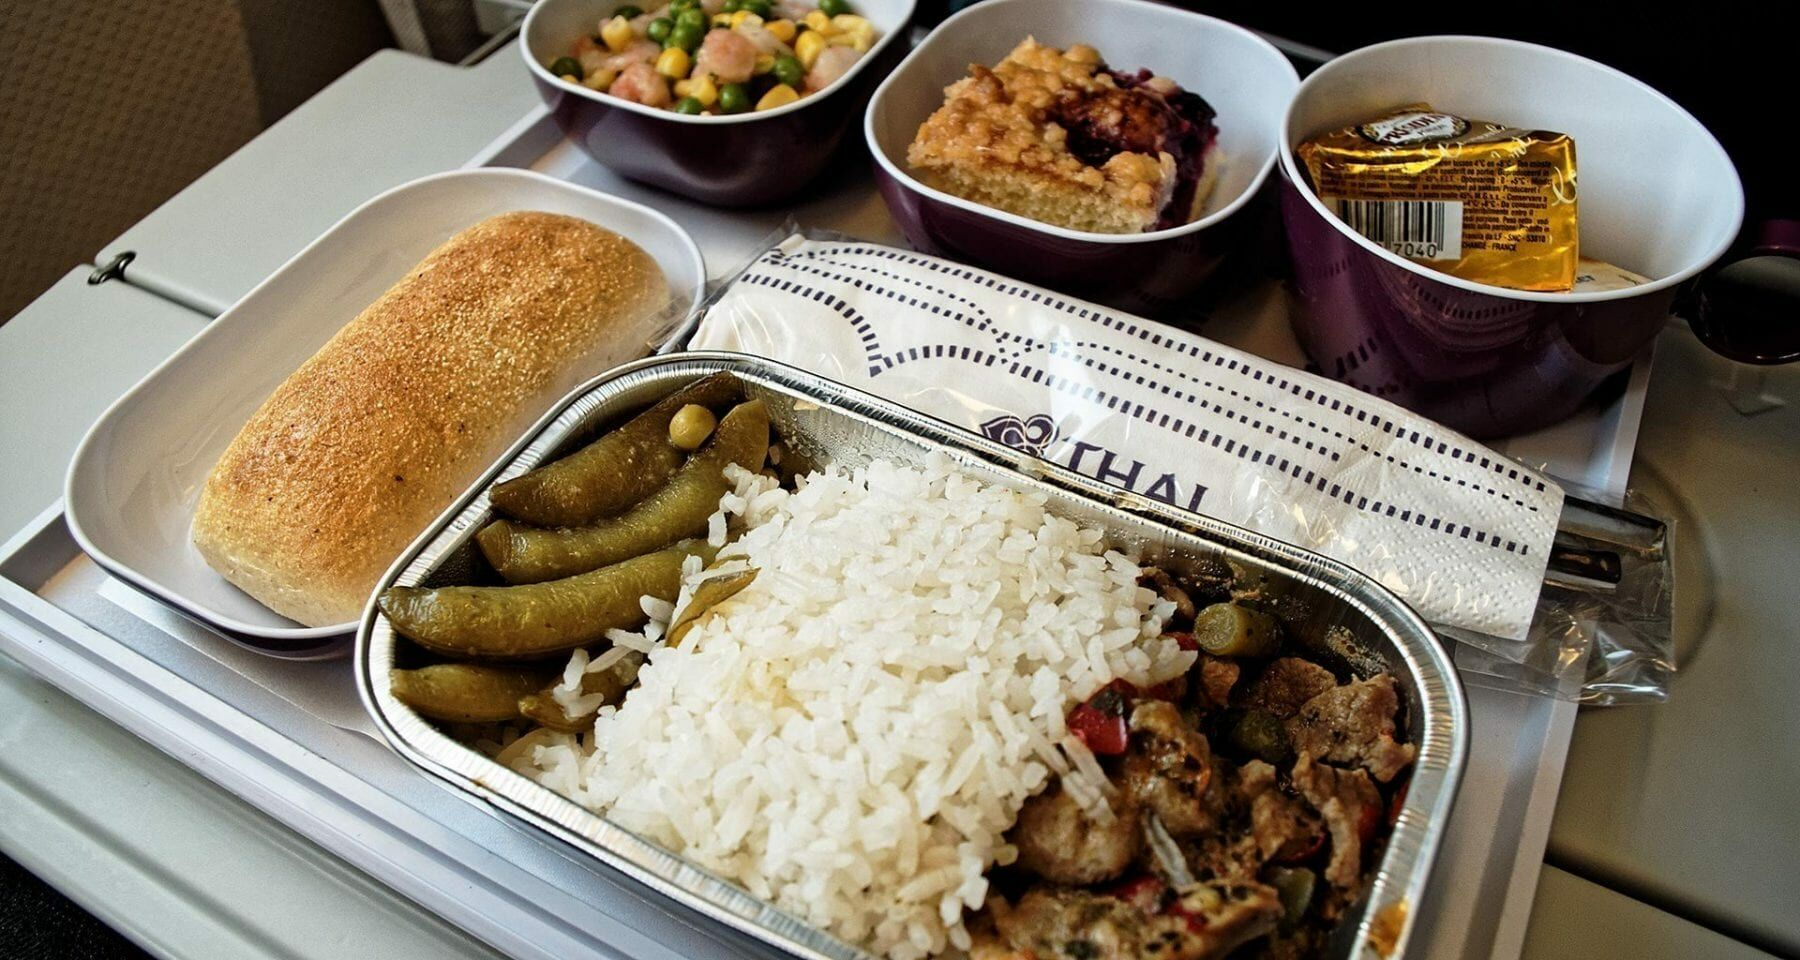 Thai Airways food landing in 7-Eleven next month | Thaiger